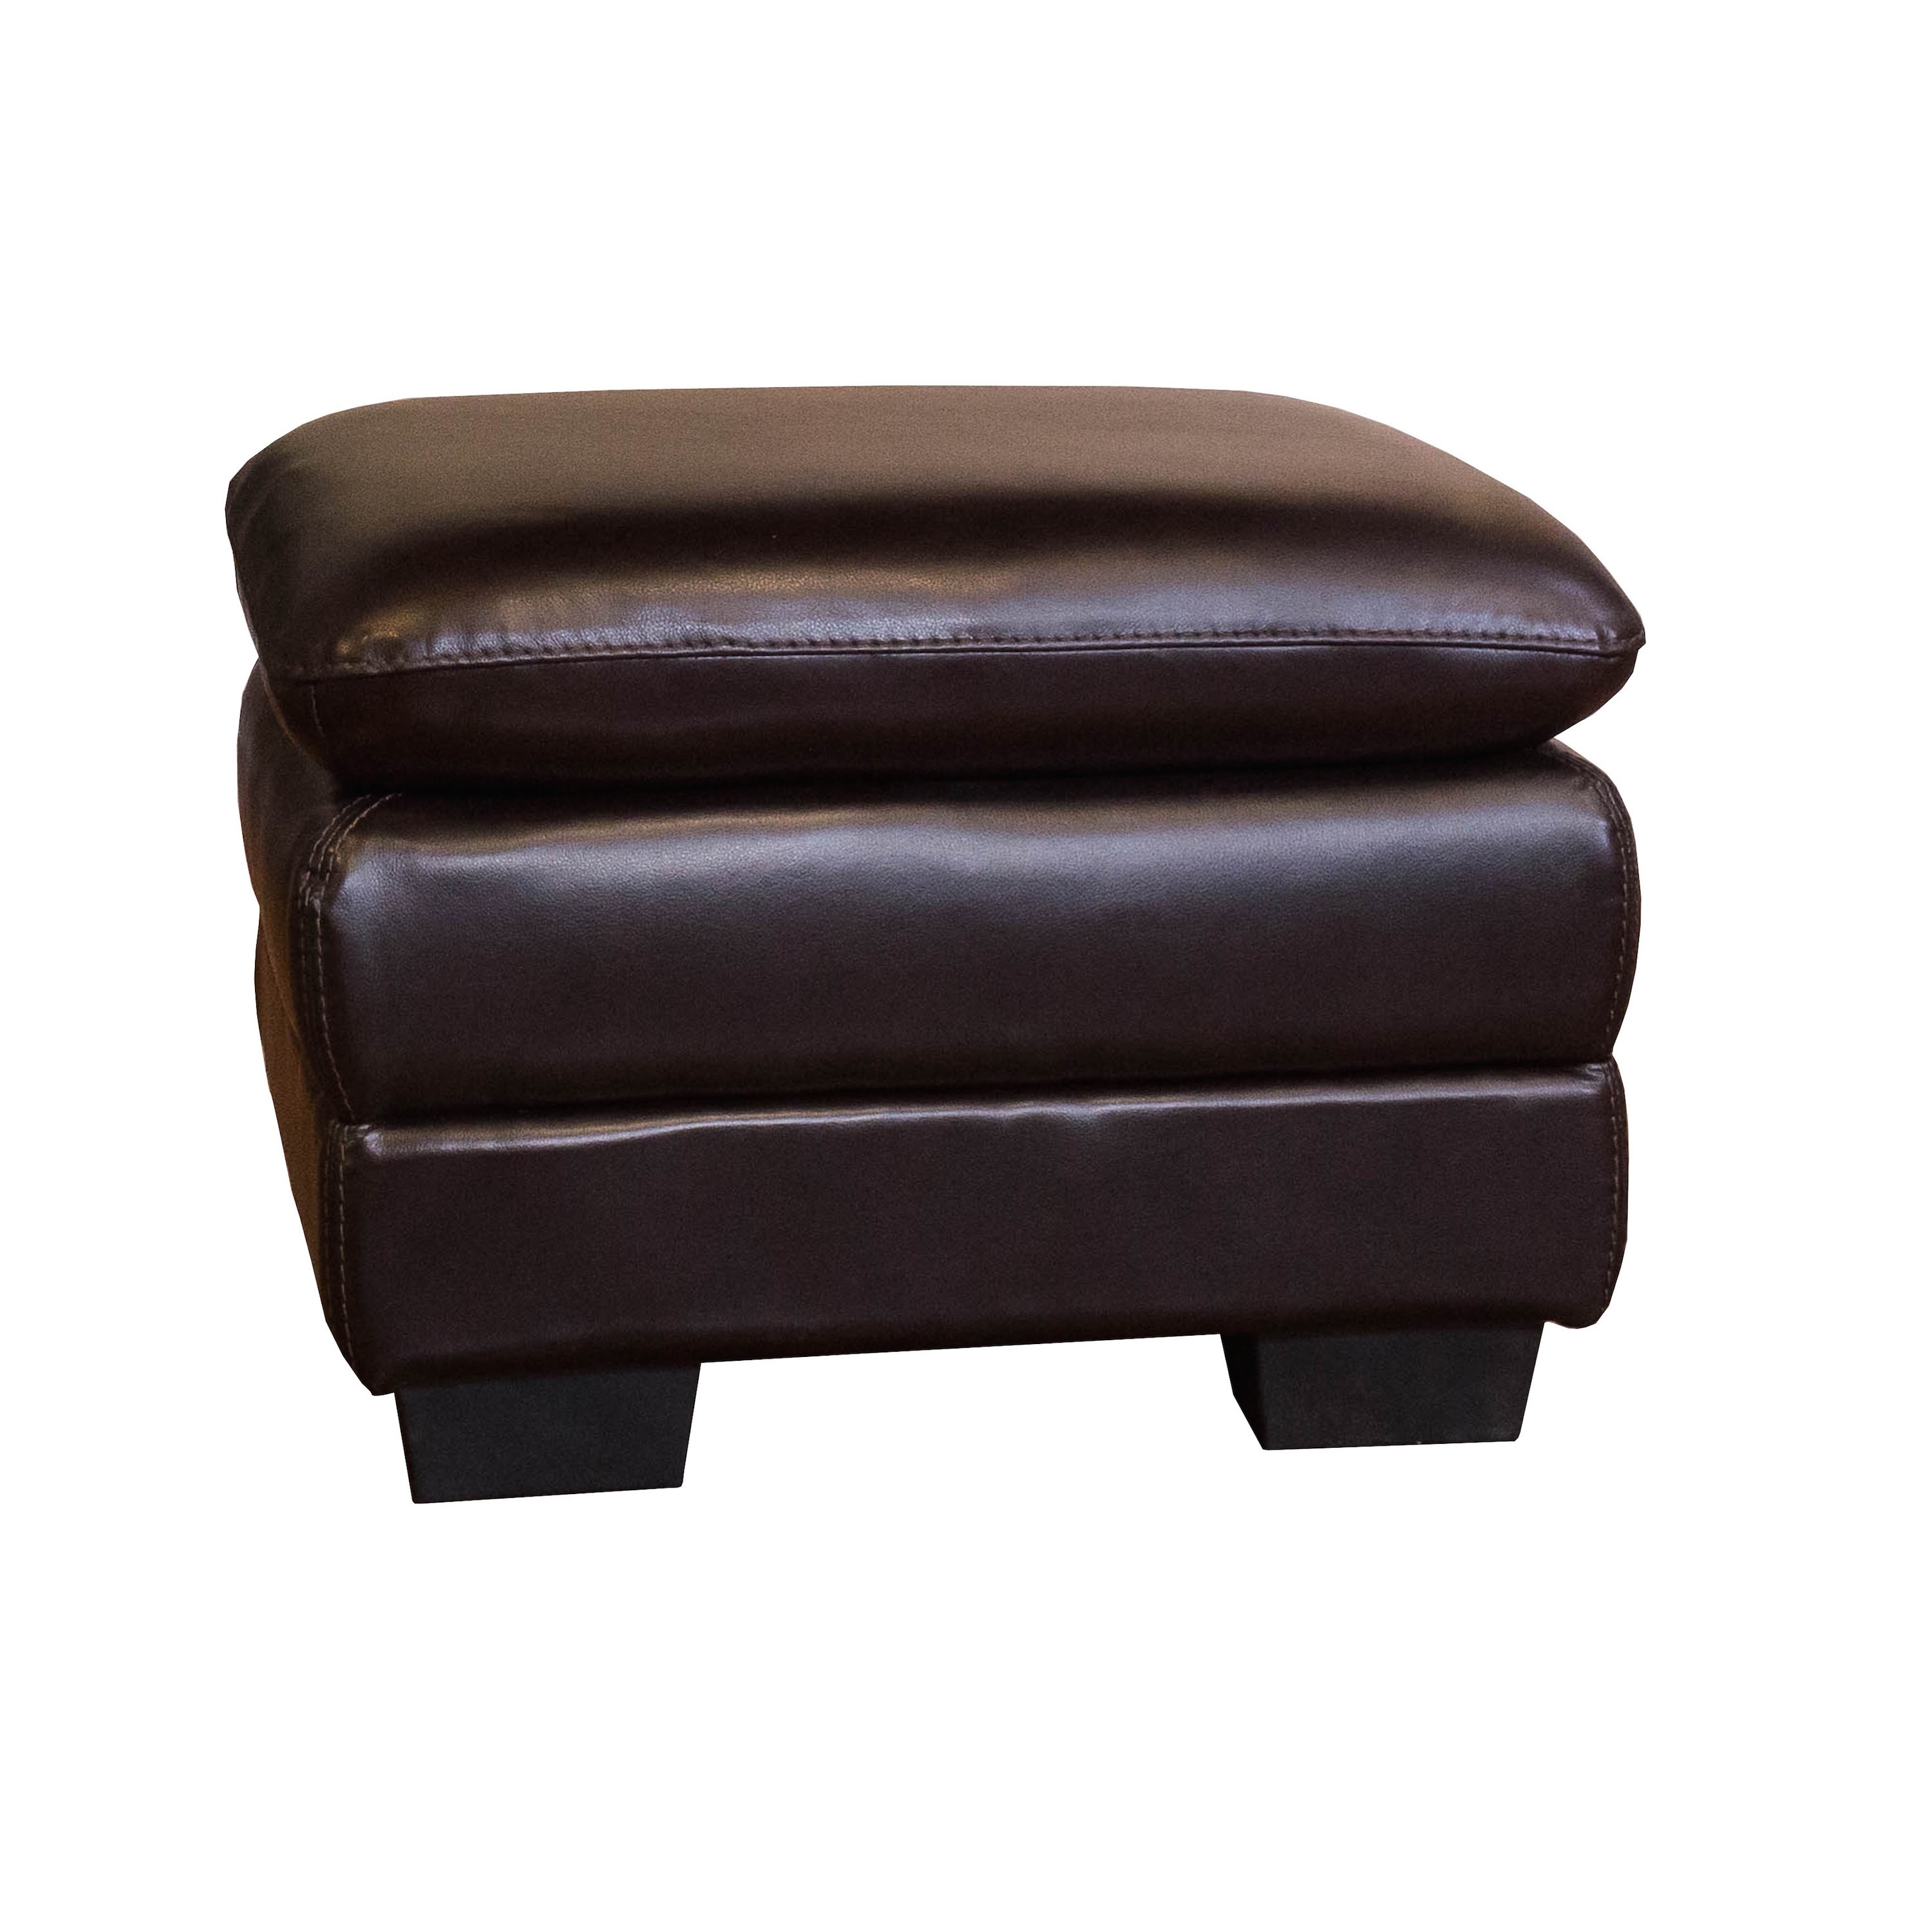 oversized leather chair and ottoman sets stools height shop chocolate set free shipping today overstock com 10199202